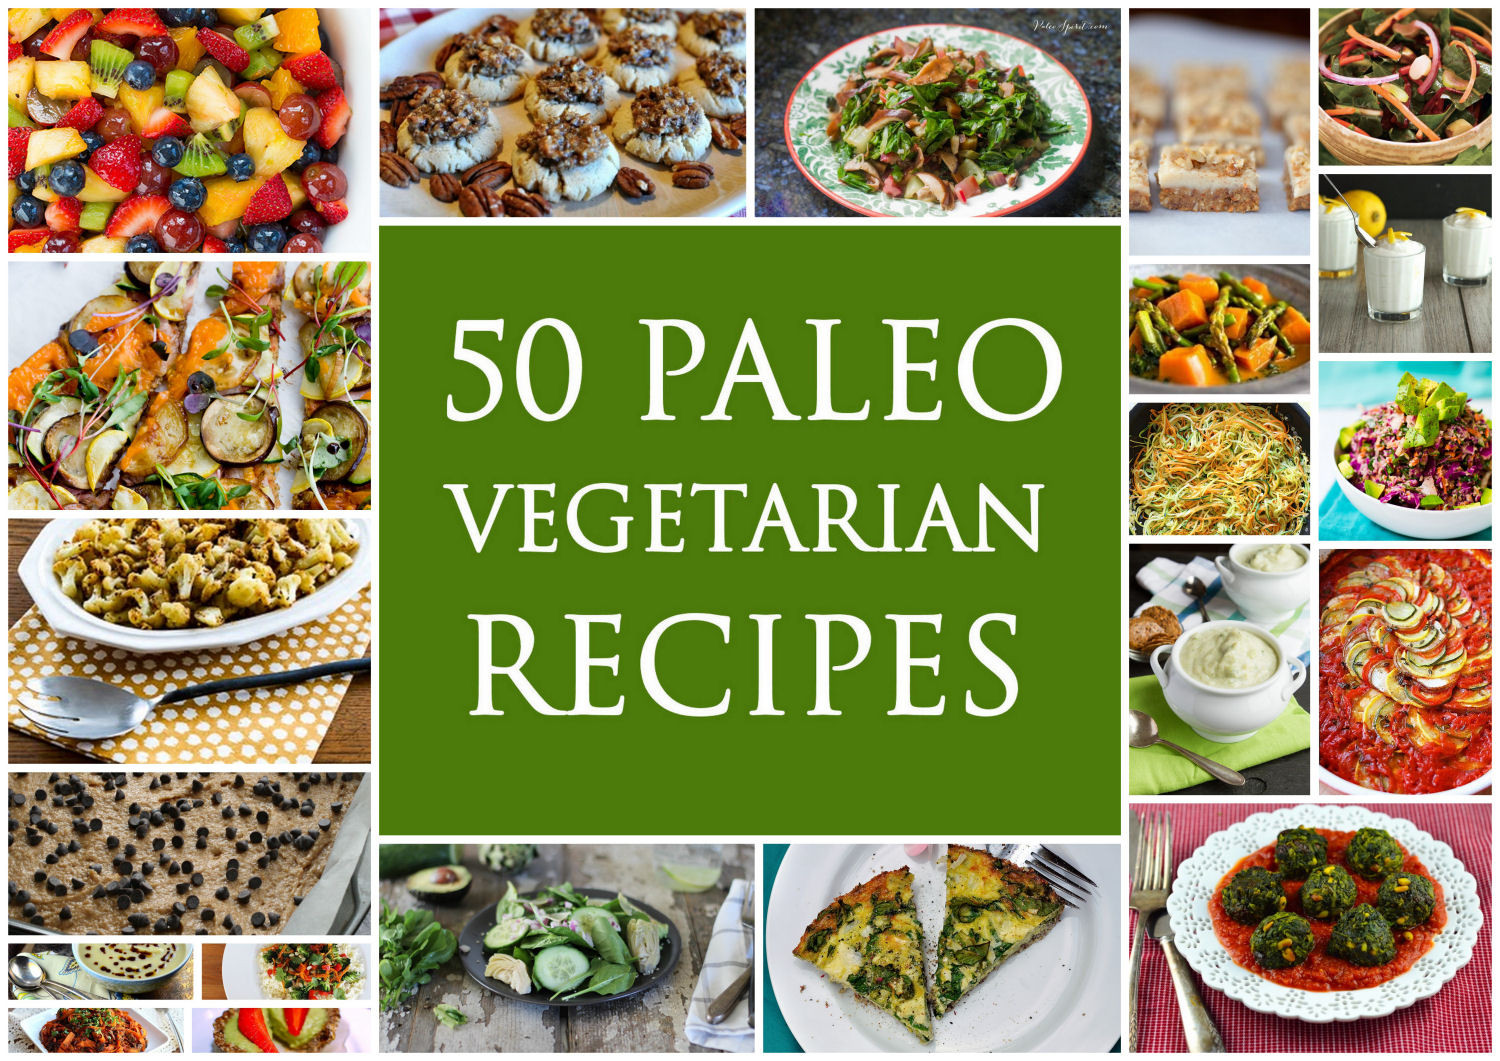 Vegetarian Paleo Diet  50 Best Ve arian Paleo Recipes Paleo Zone Recipes